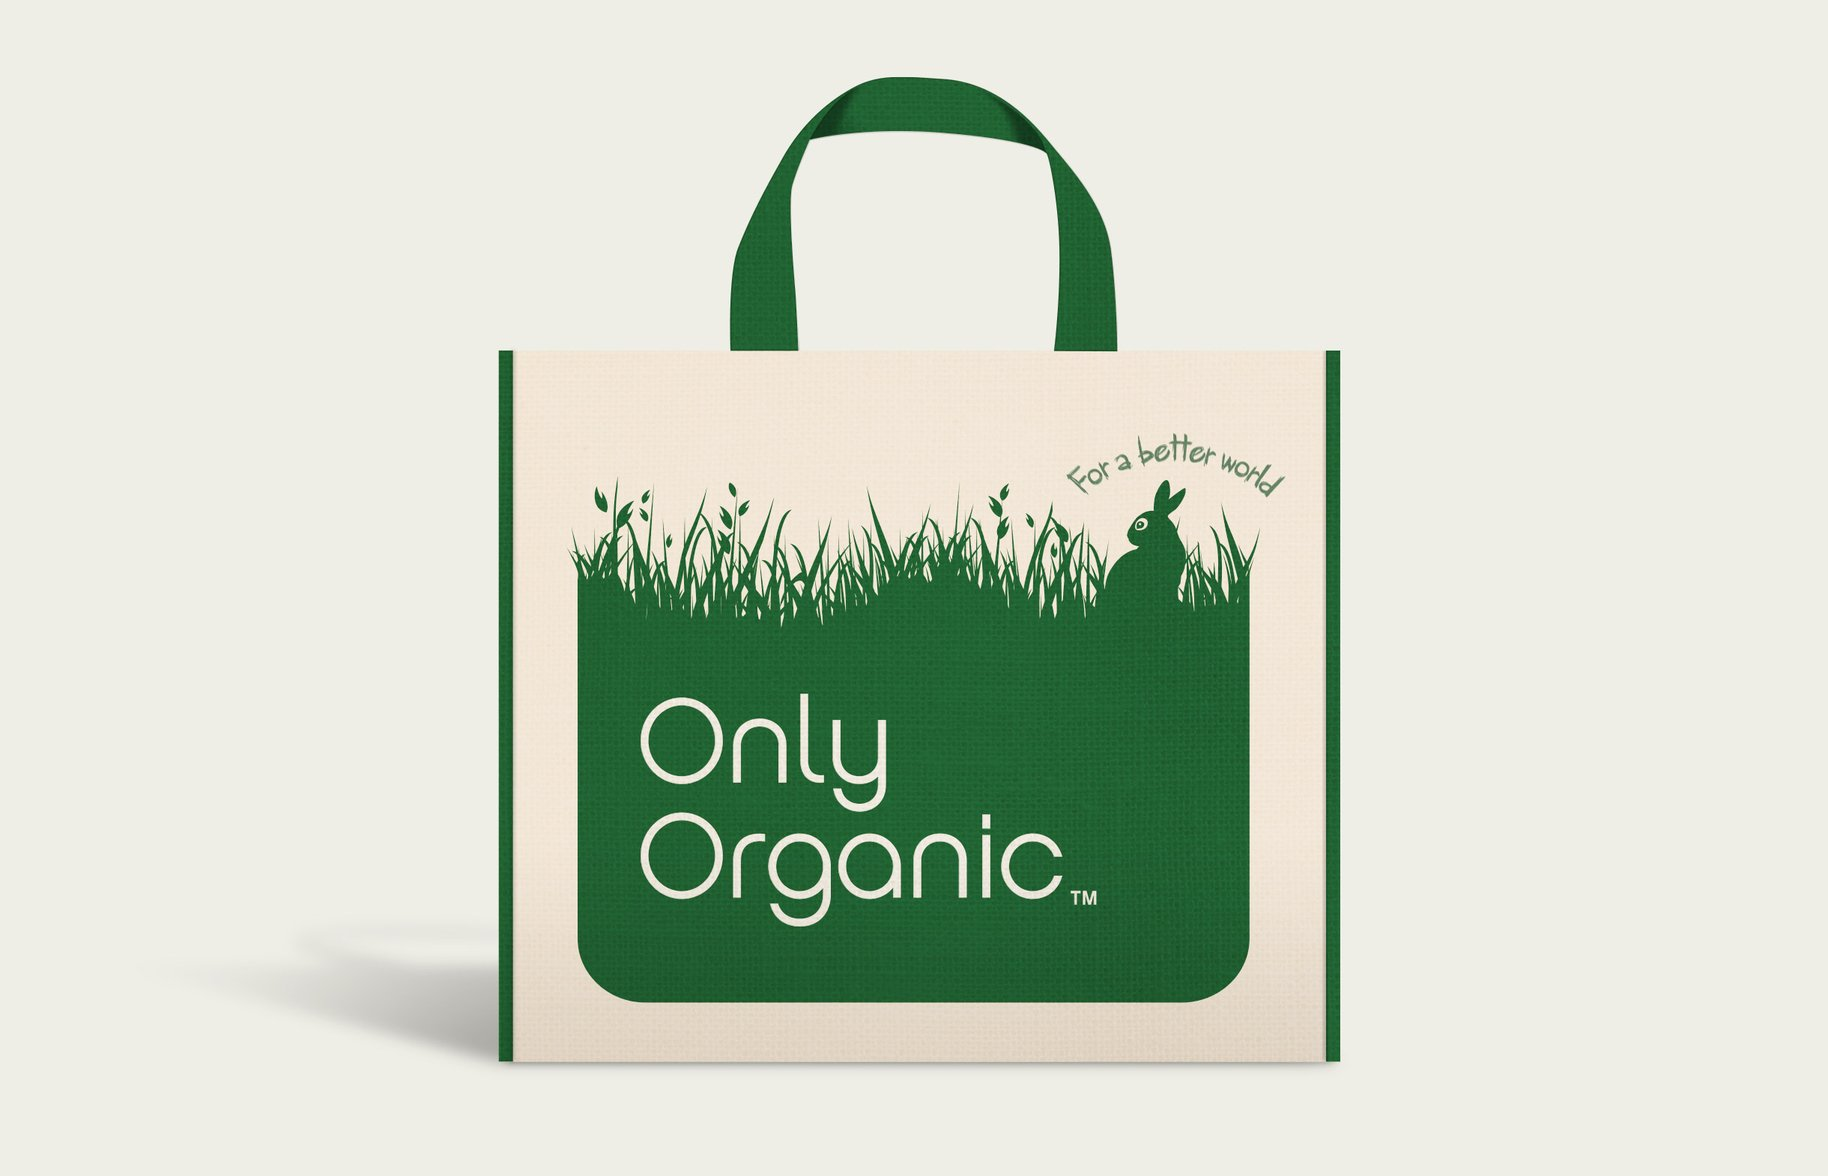 Only Organic branded textured tote bag